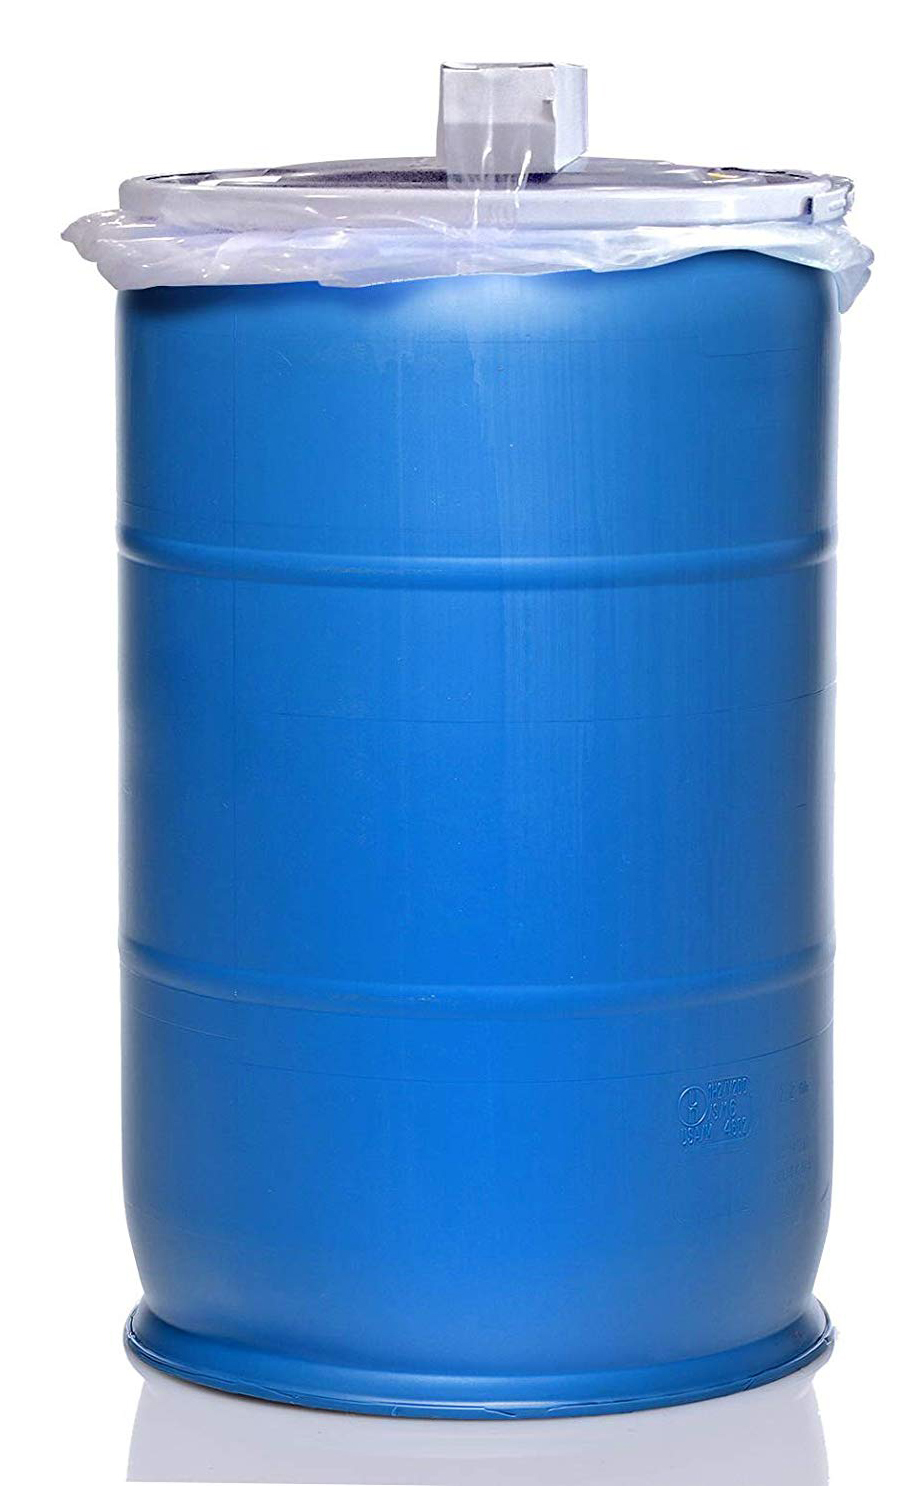 Warming Water-based Lubricant – 55 Gallon Drum